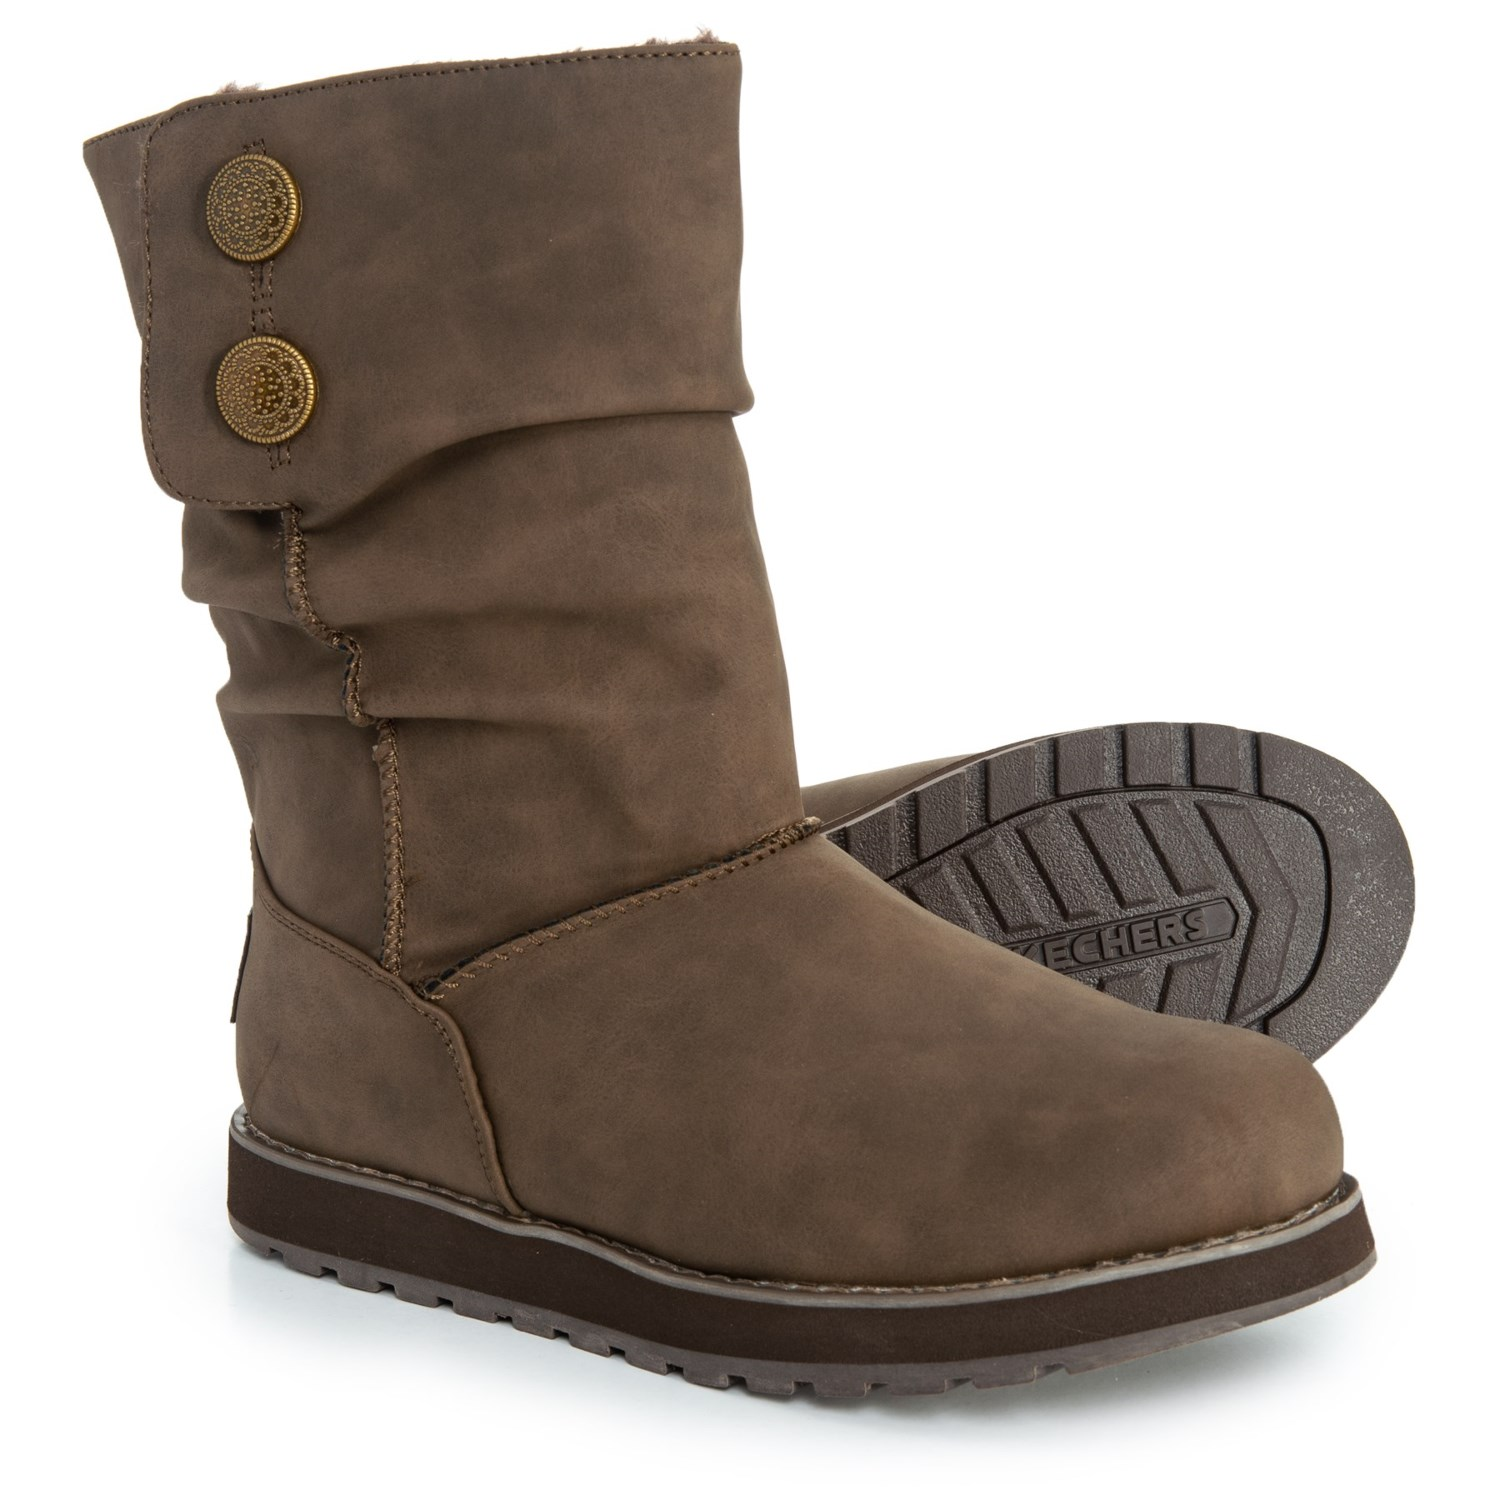 skechers womens boots